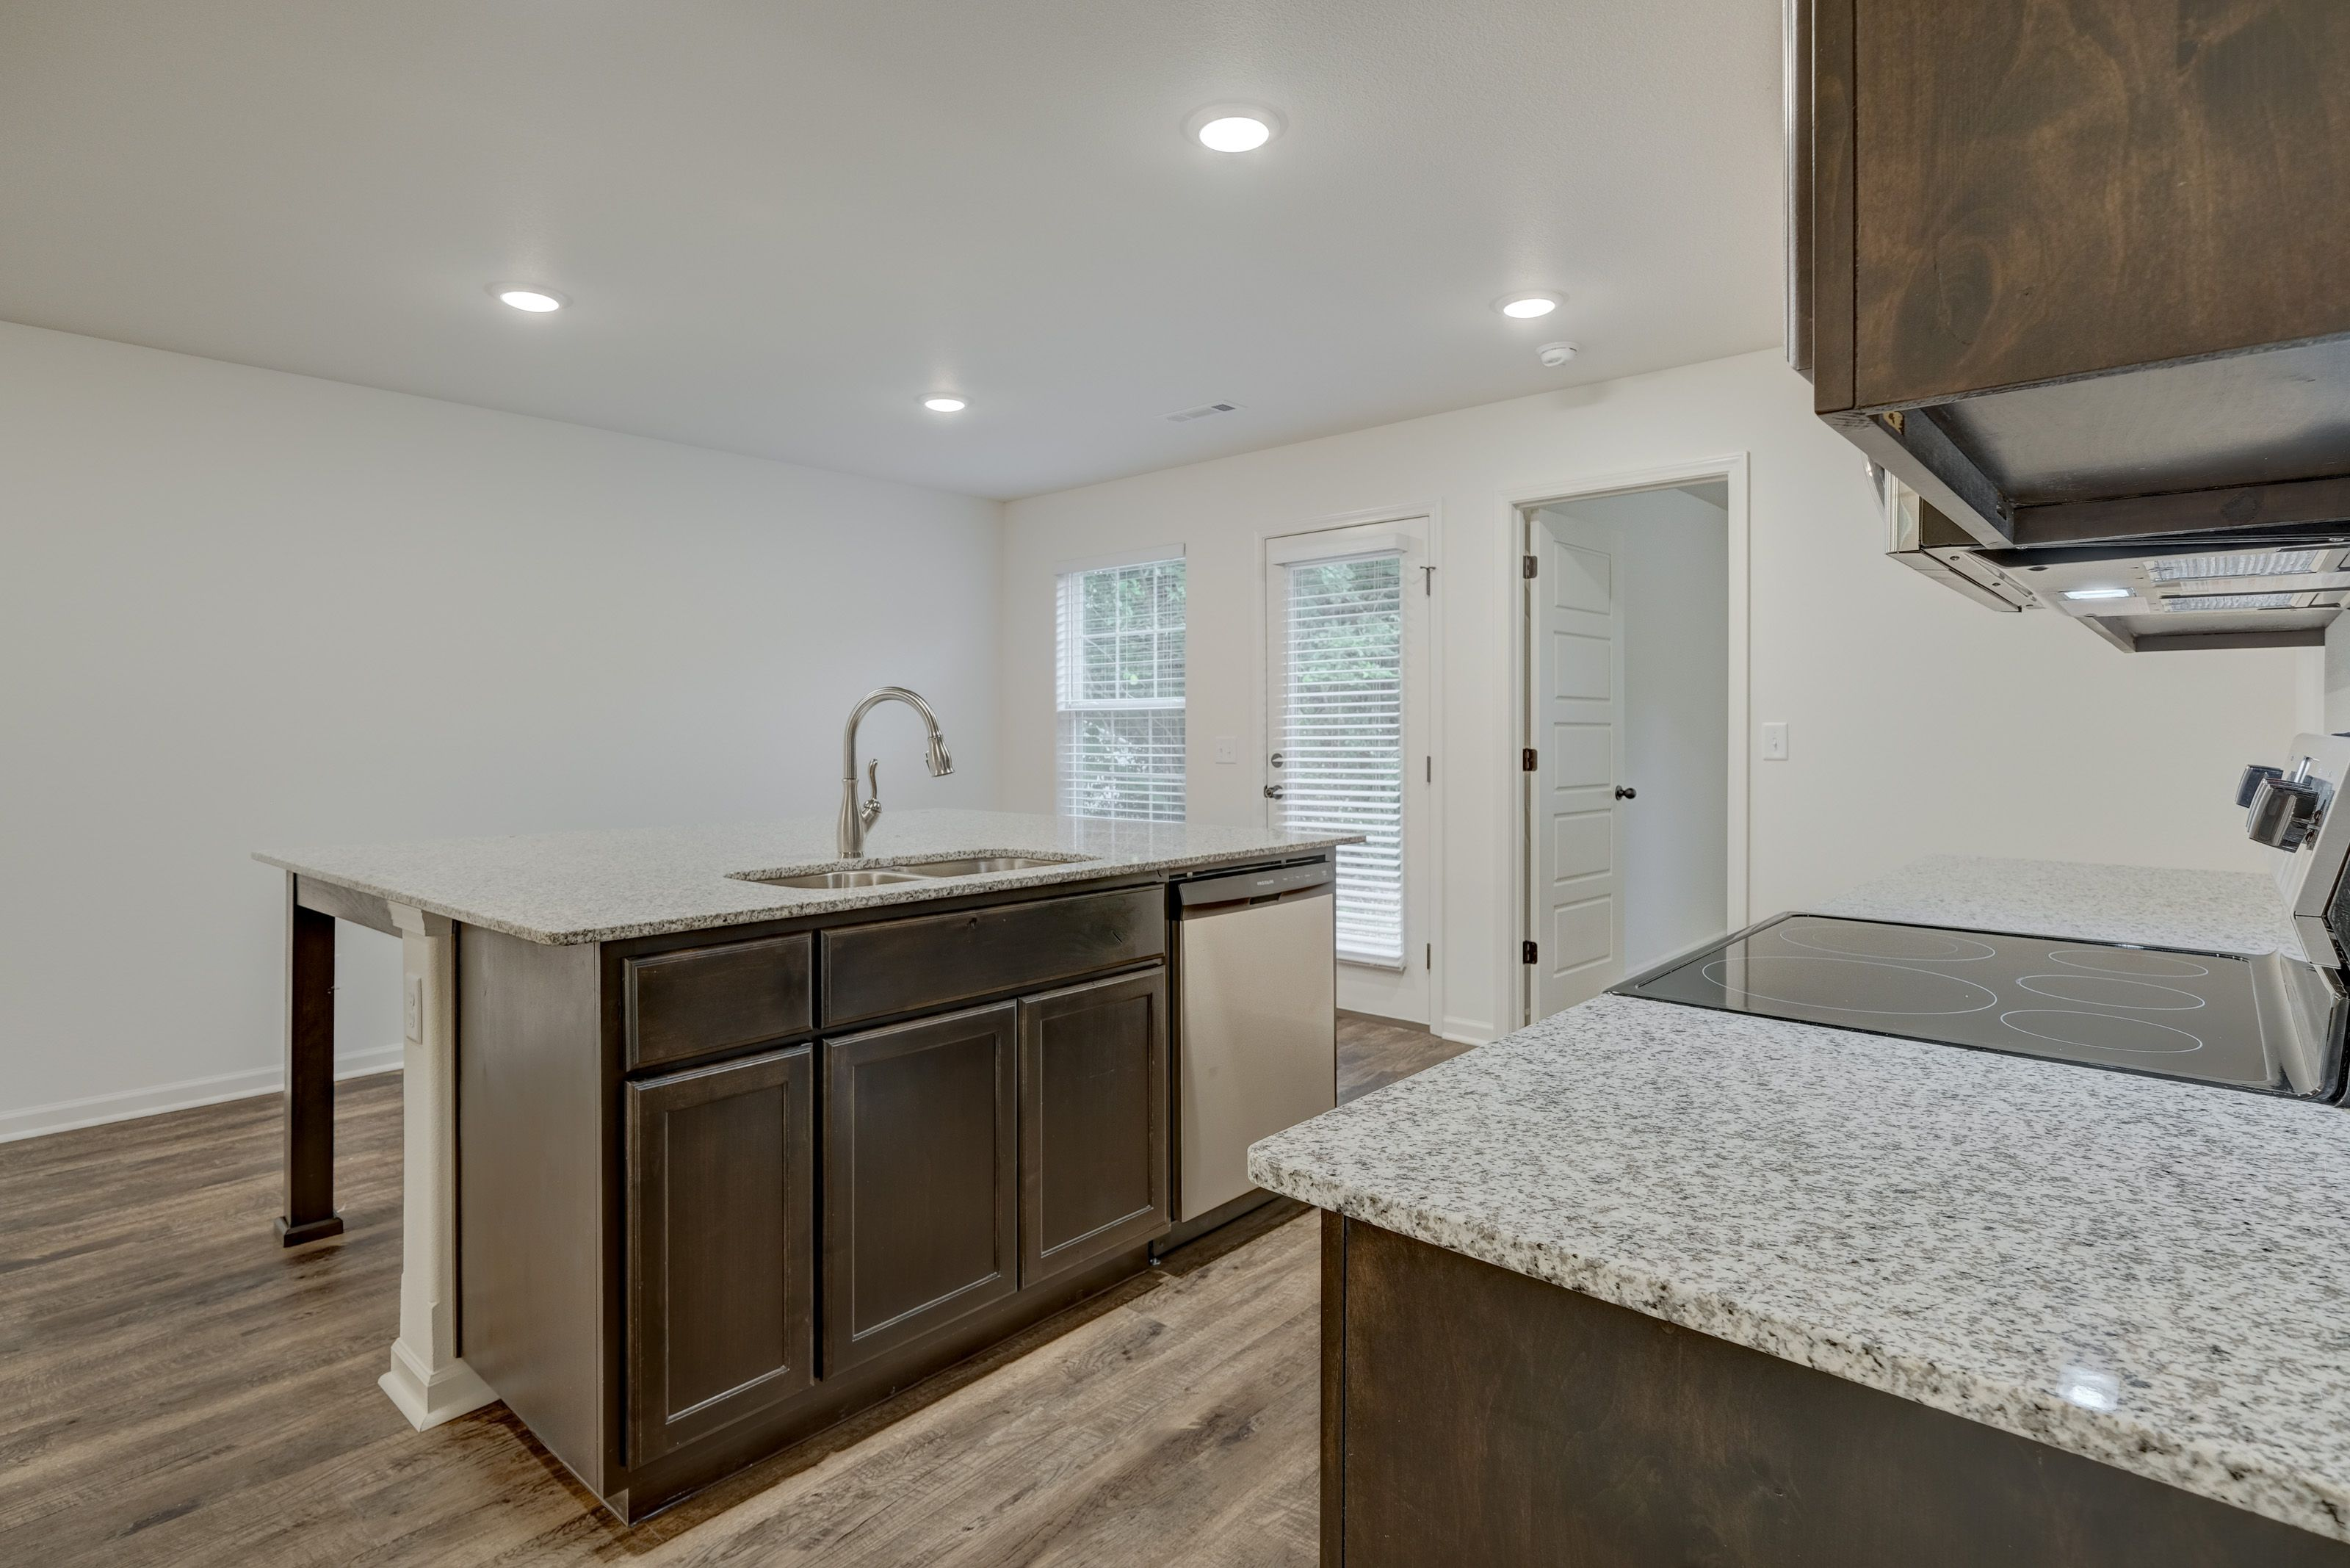 Kitchen featured in the 1100C-KI Series By Schuber Mitchell Homes in Fayetteville, AR